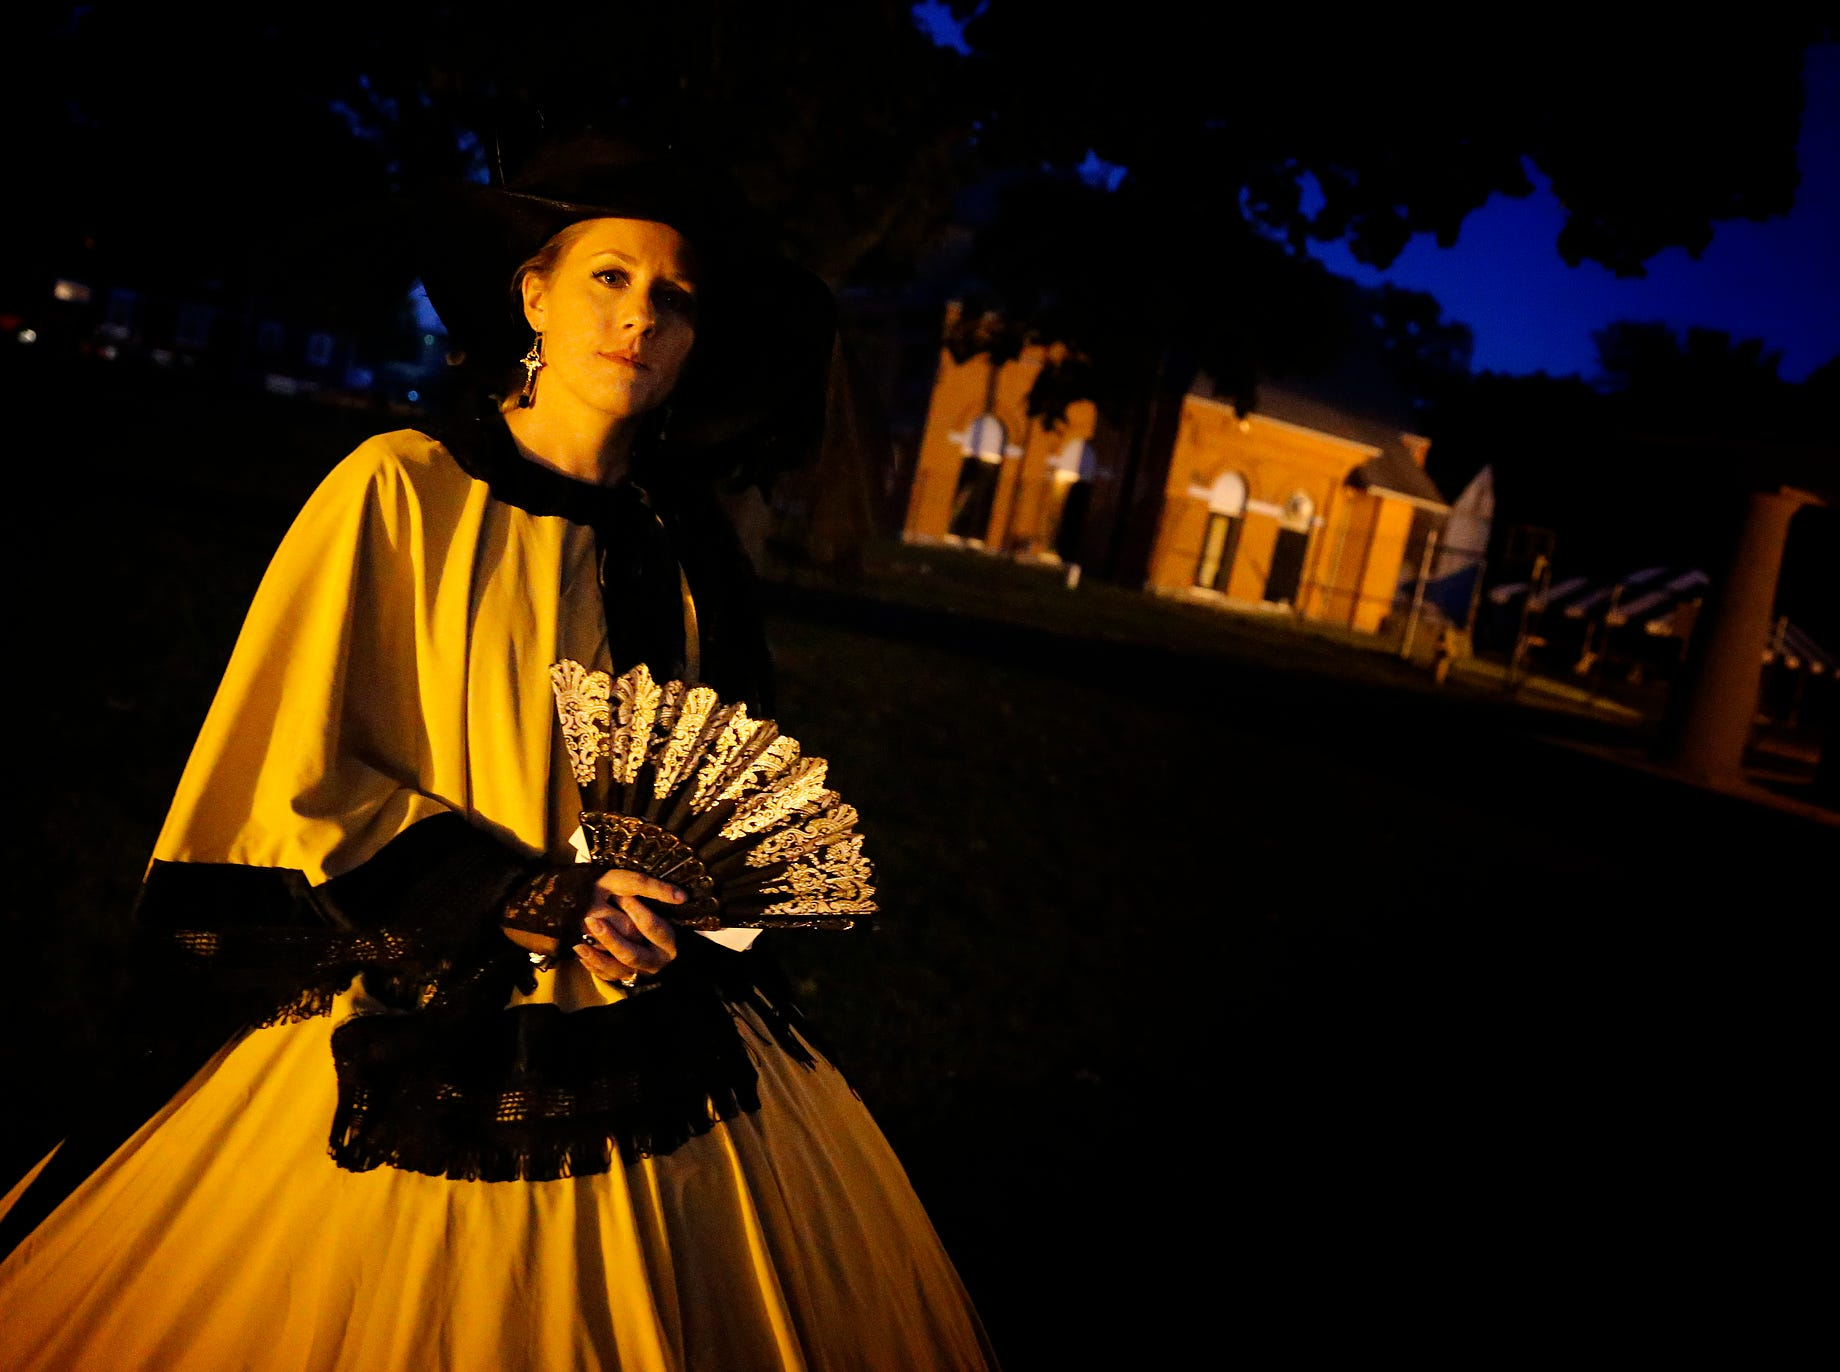 2016: Dressed in a remake of a Civil War-era dress, Michelle Bertron, of Elmira, stands in the foreground of the former Elmira Civil War Prison Camp. Bertron led walks around the campus in mid-October, detailing numerous ghost stories.